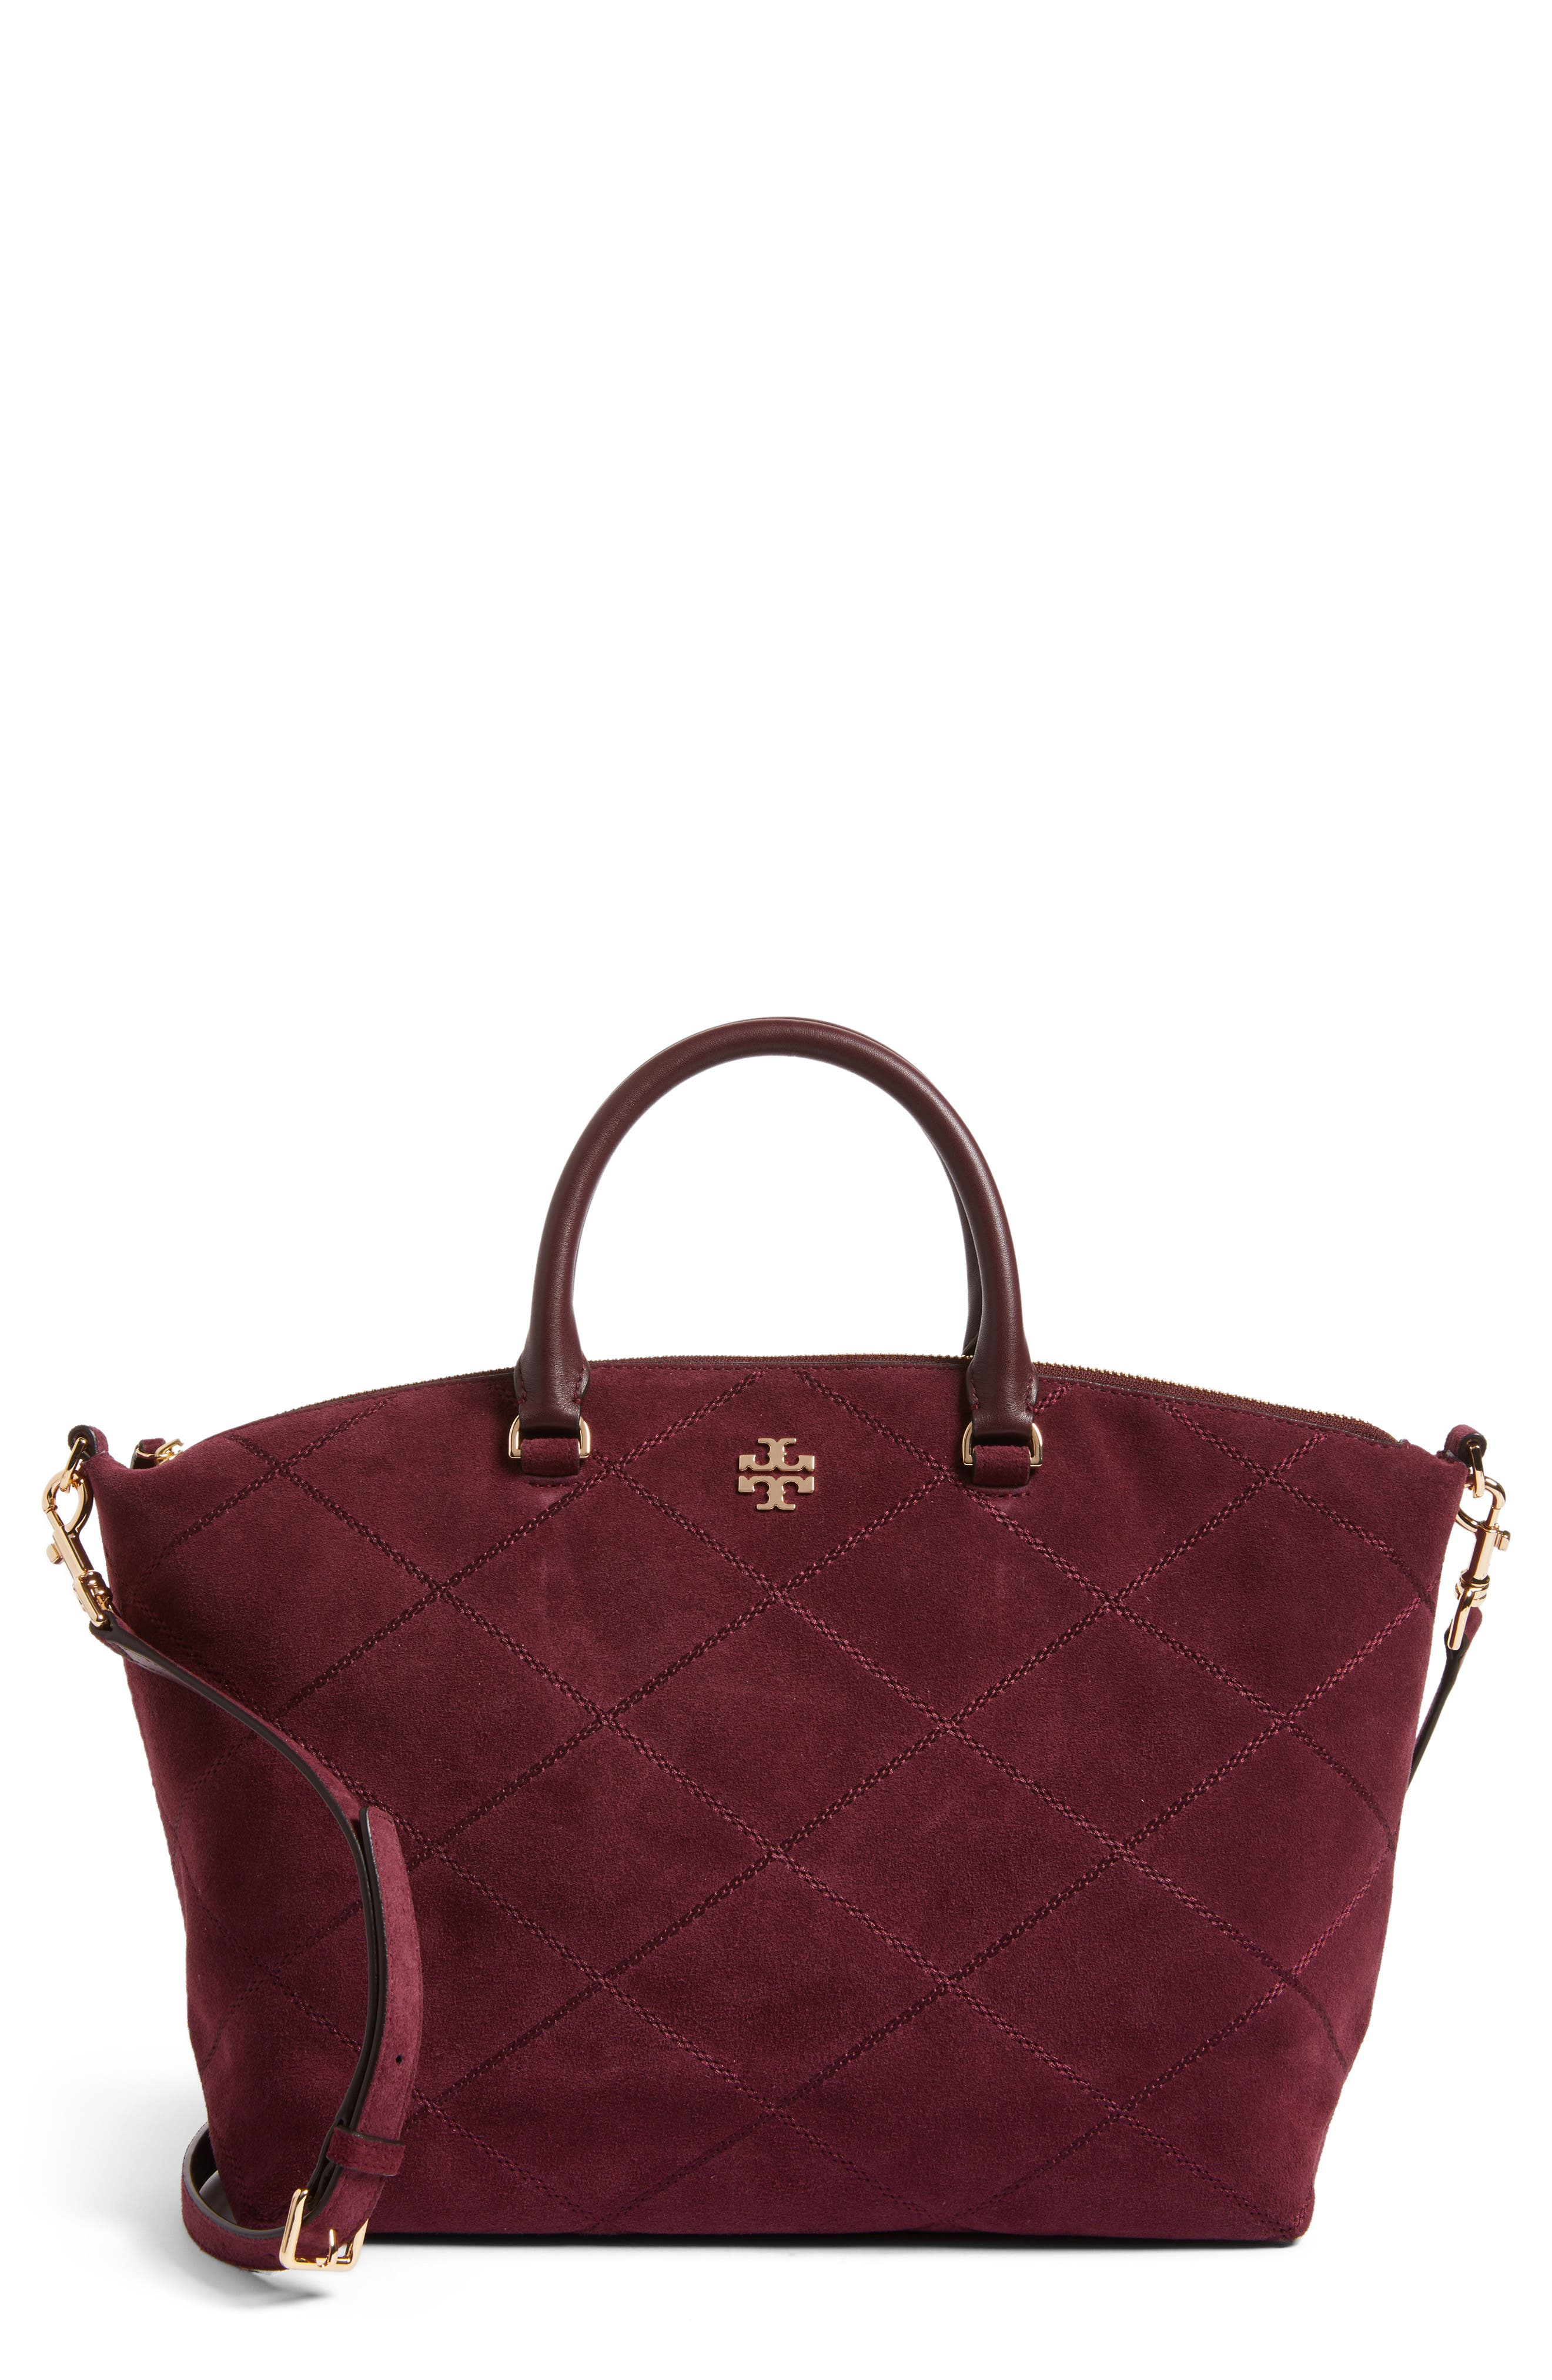 Frida Stitched Suede Satchel,                             Main thumbnail 1, color,                             930